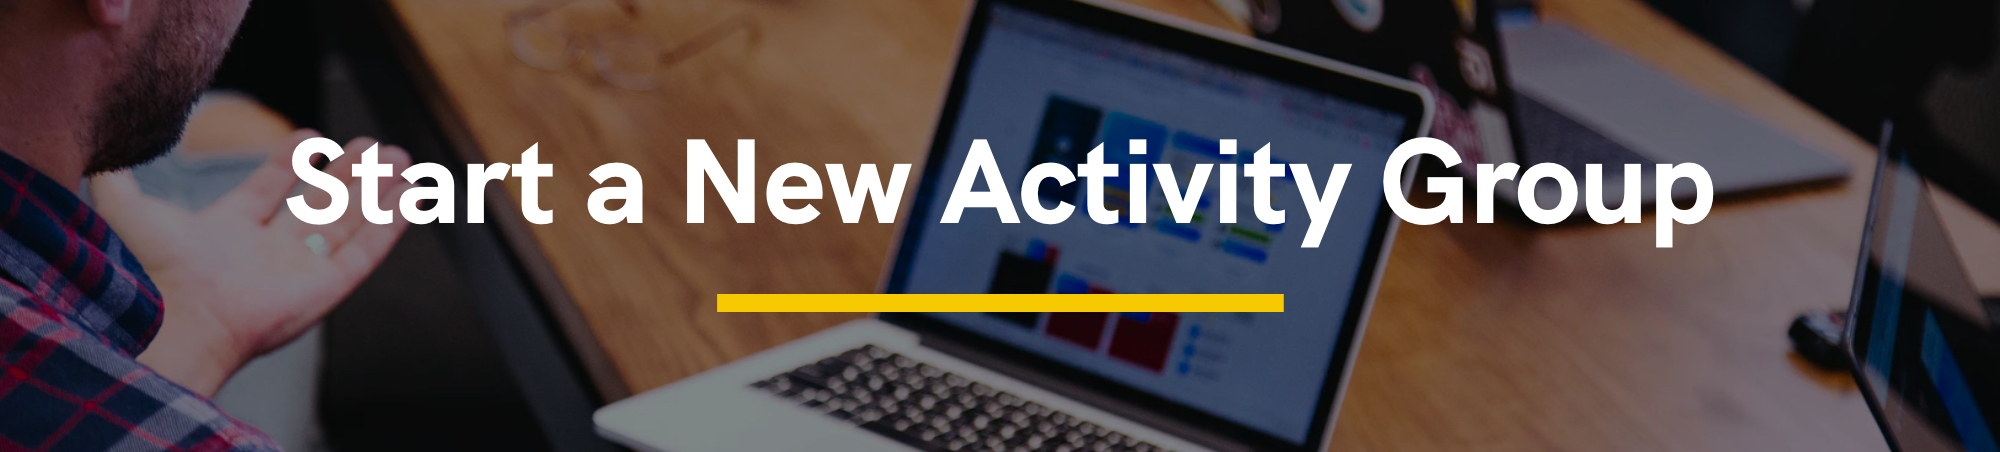 Start a New Activity Group